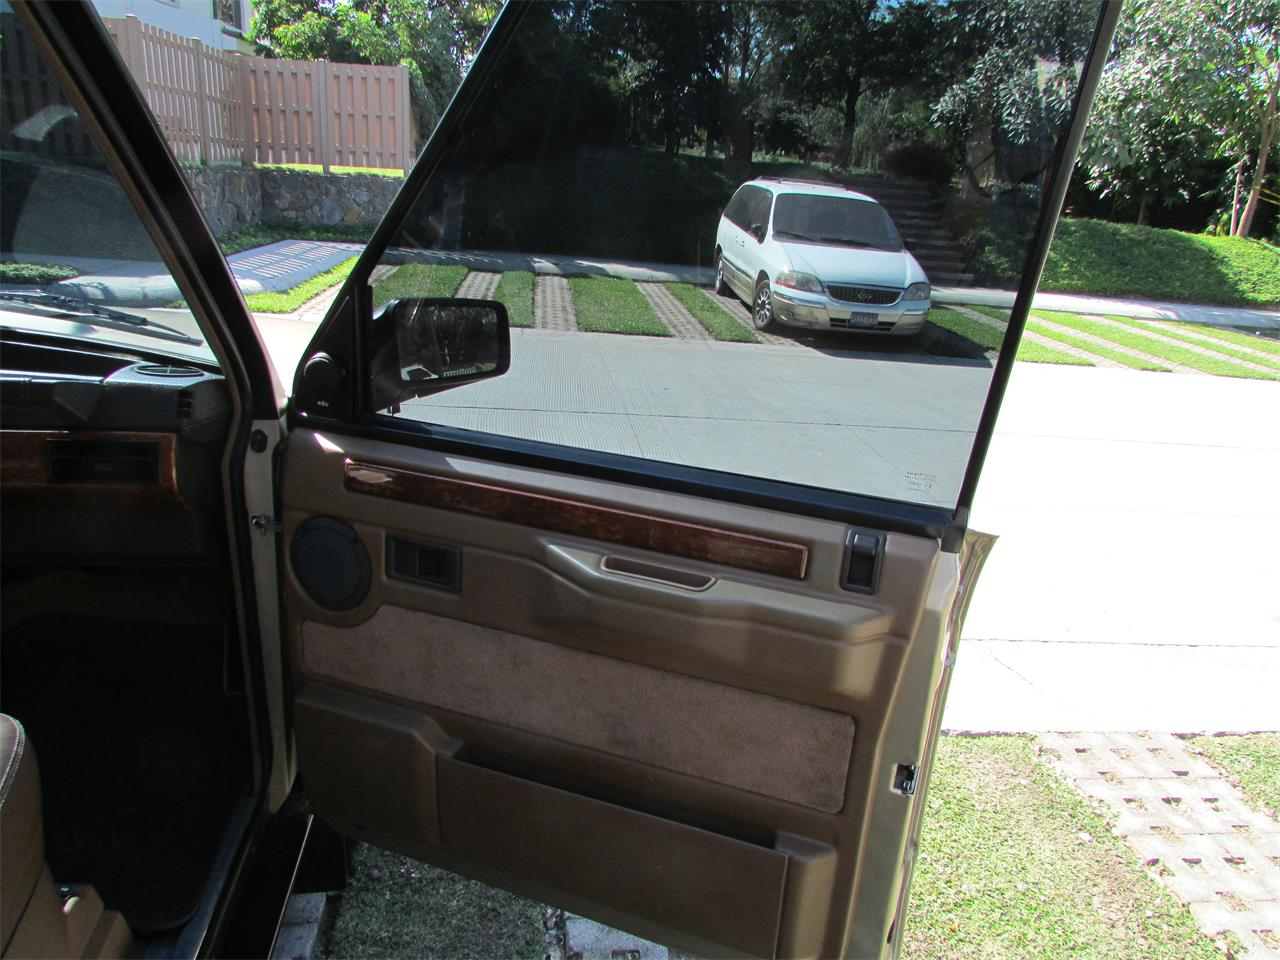 Large Picture of 1993 Range Rover - $19,500.00 Offered by a Private Seller - GELK